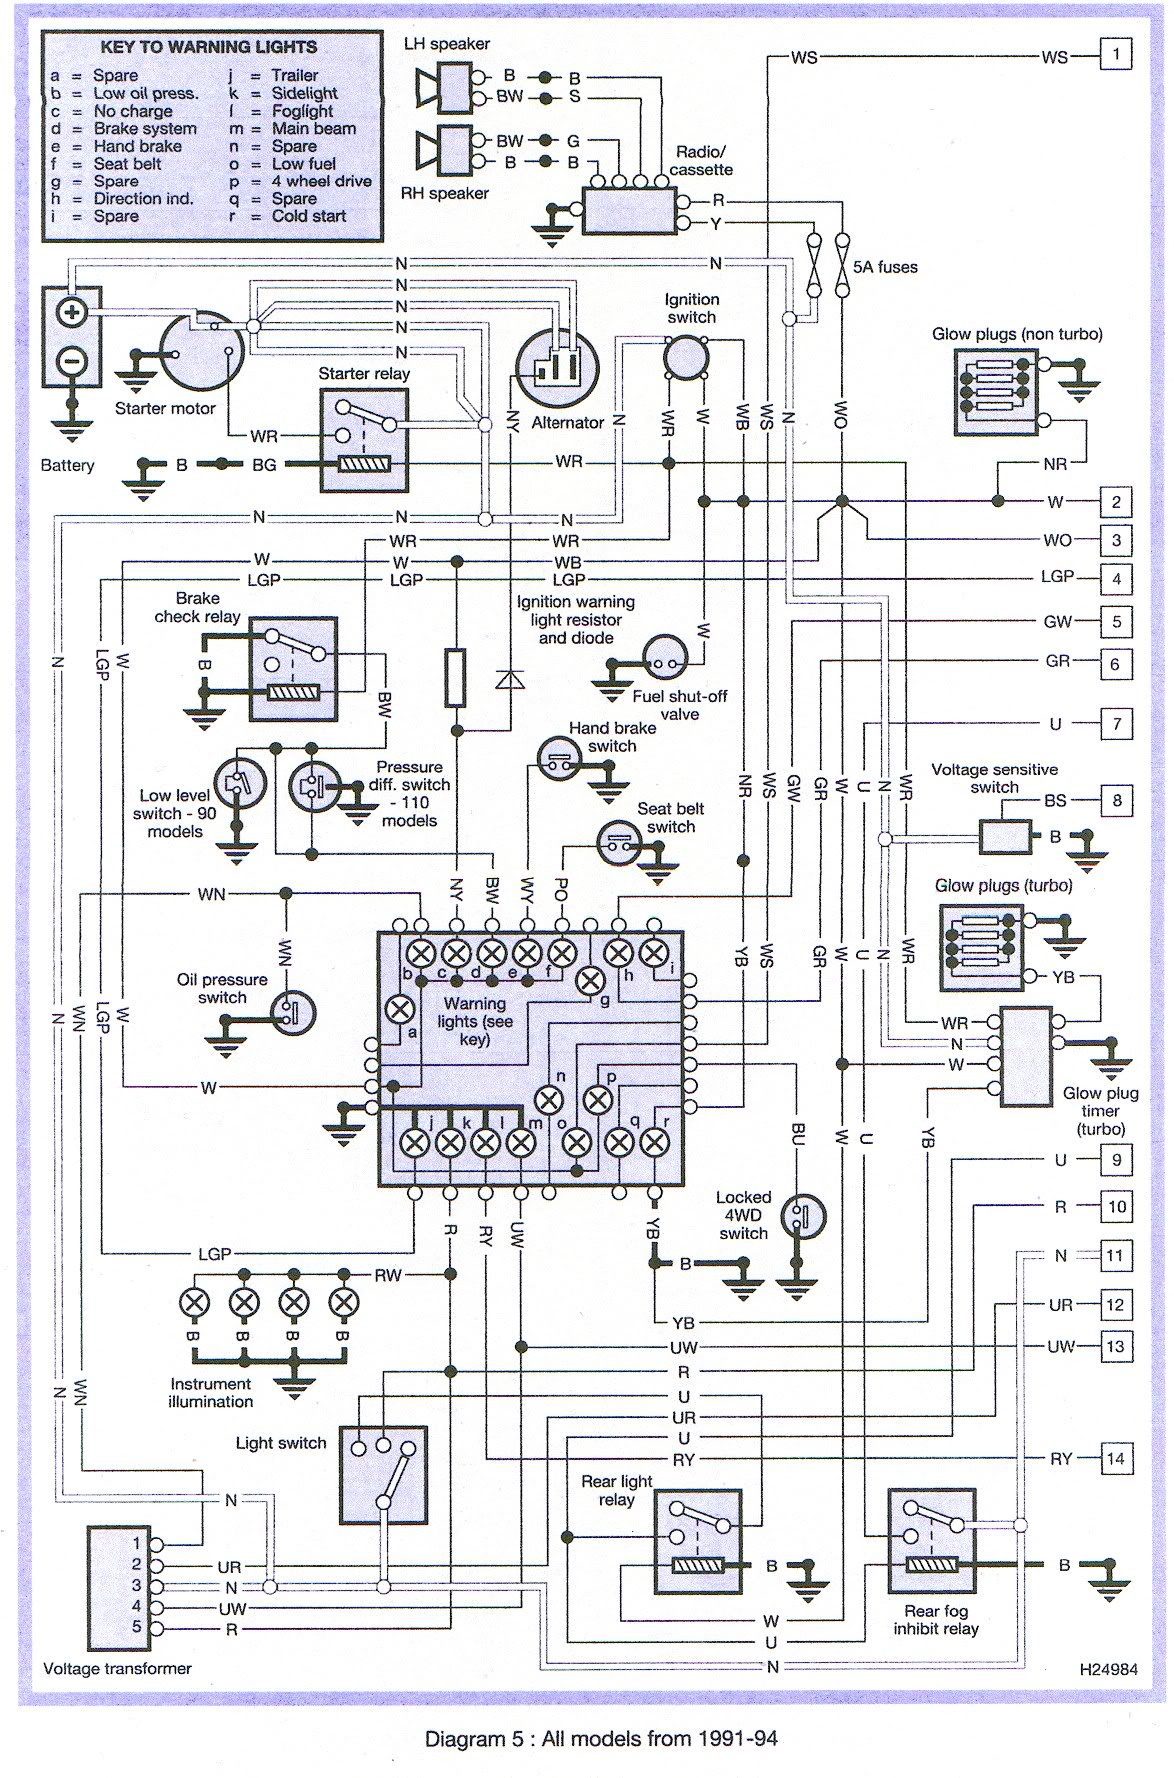 land rover defender 90 rear wiring diagram ct 9736  land rover 300tdi fuse box diagram wiring diagram  land rover 300tdi fuse box diagram